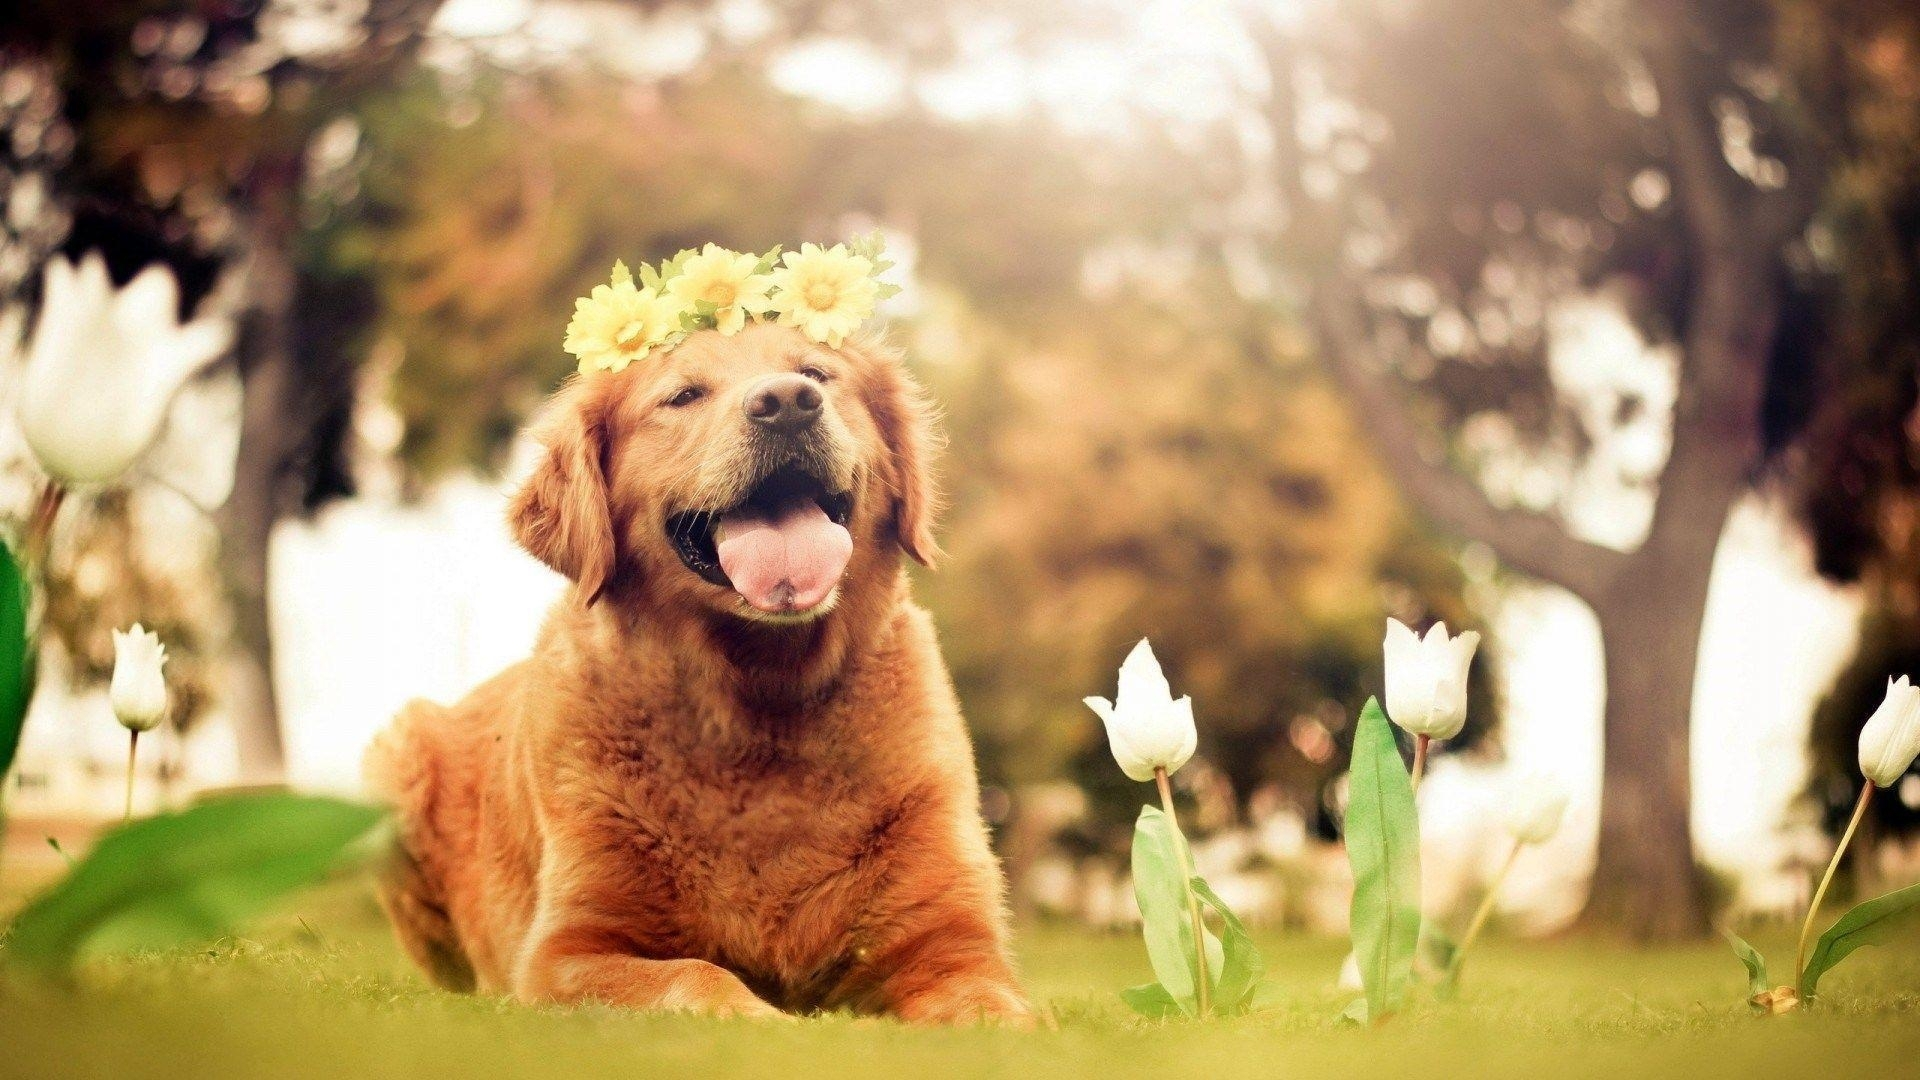 10 Top Dog Backgrounds For Computer FULL HD 1080p For PC Background